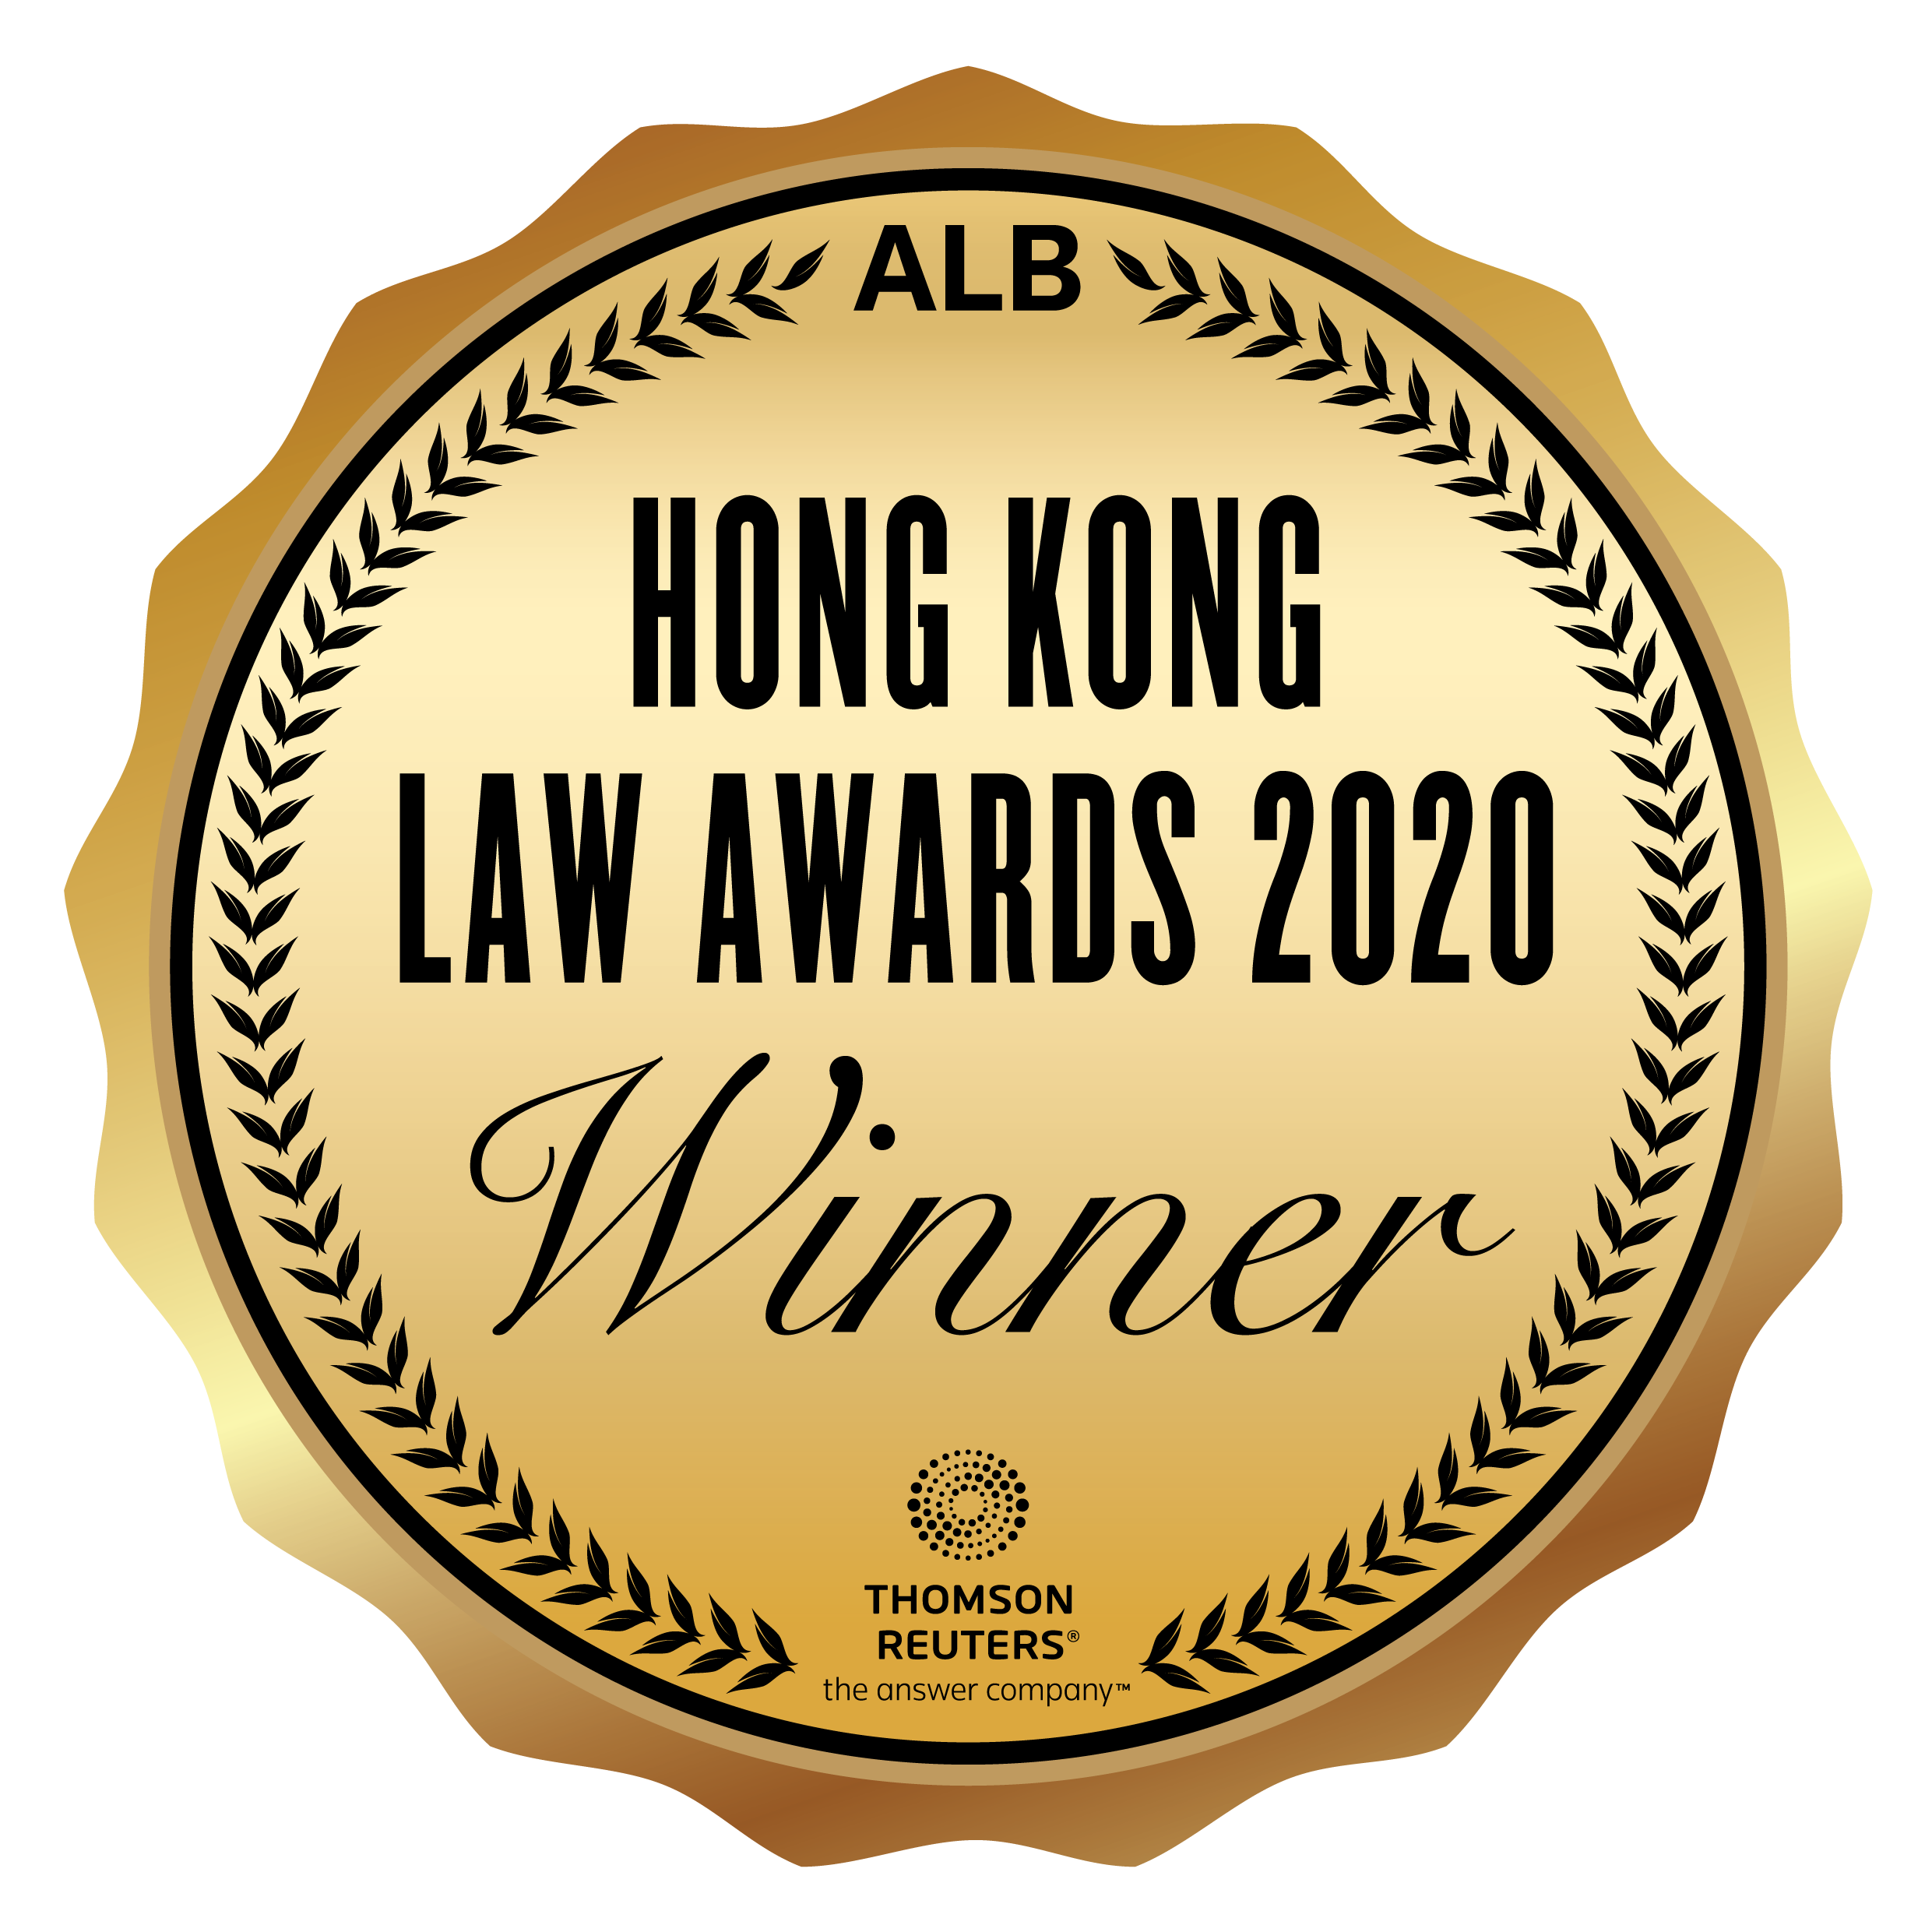 HKLA 2020 Badges Winner - About Us